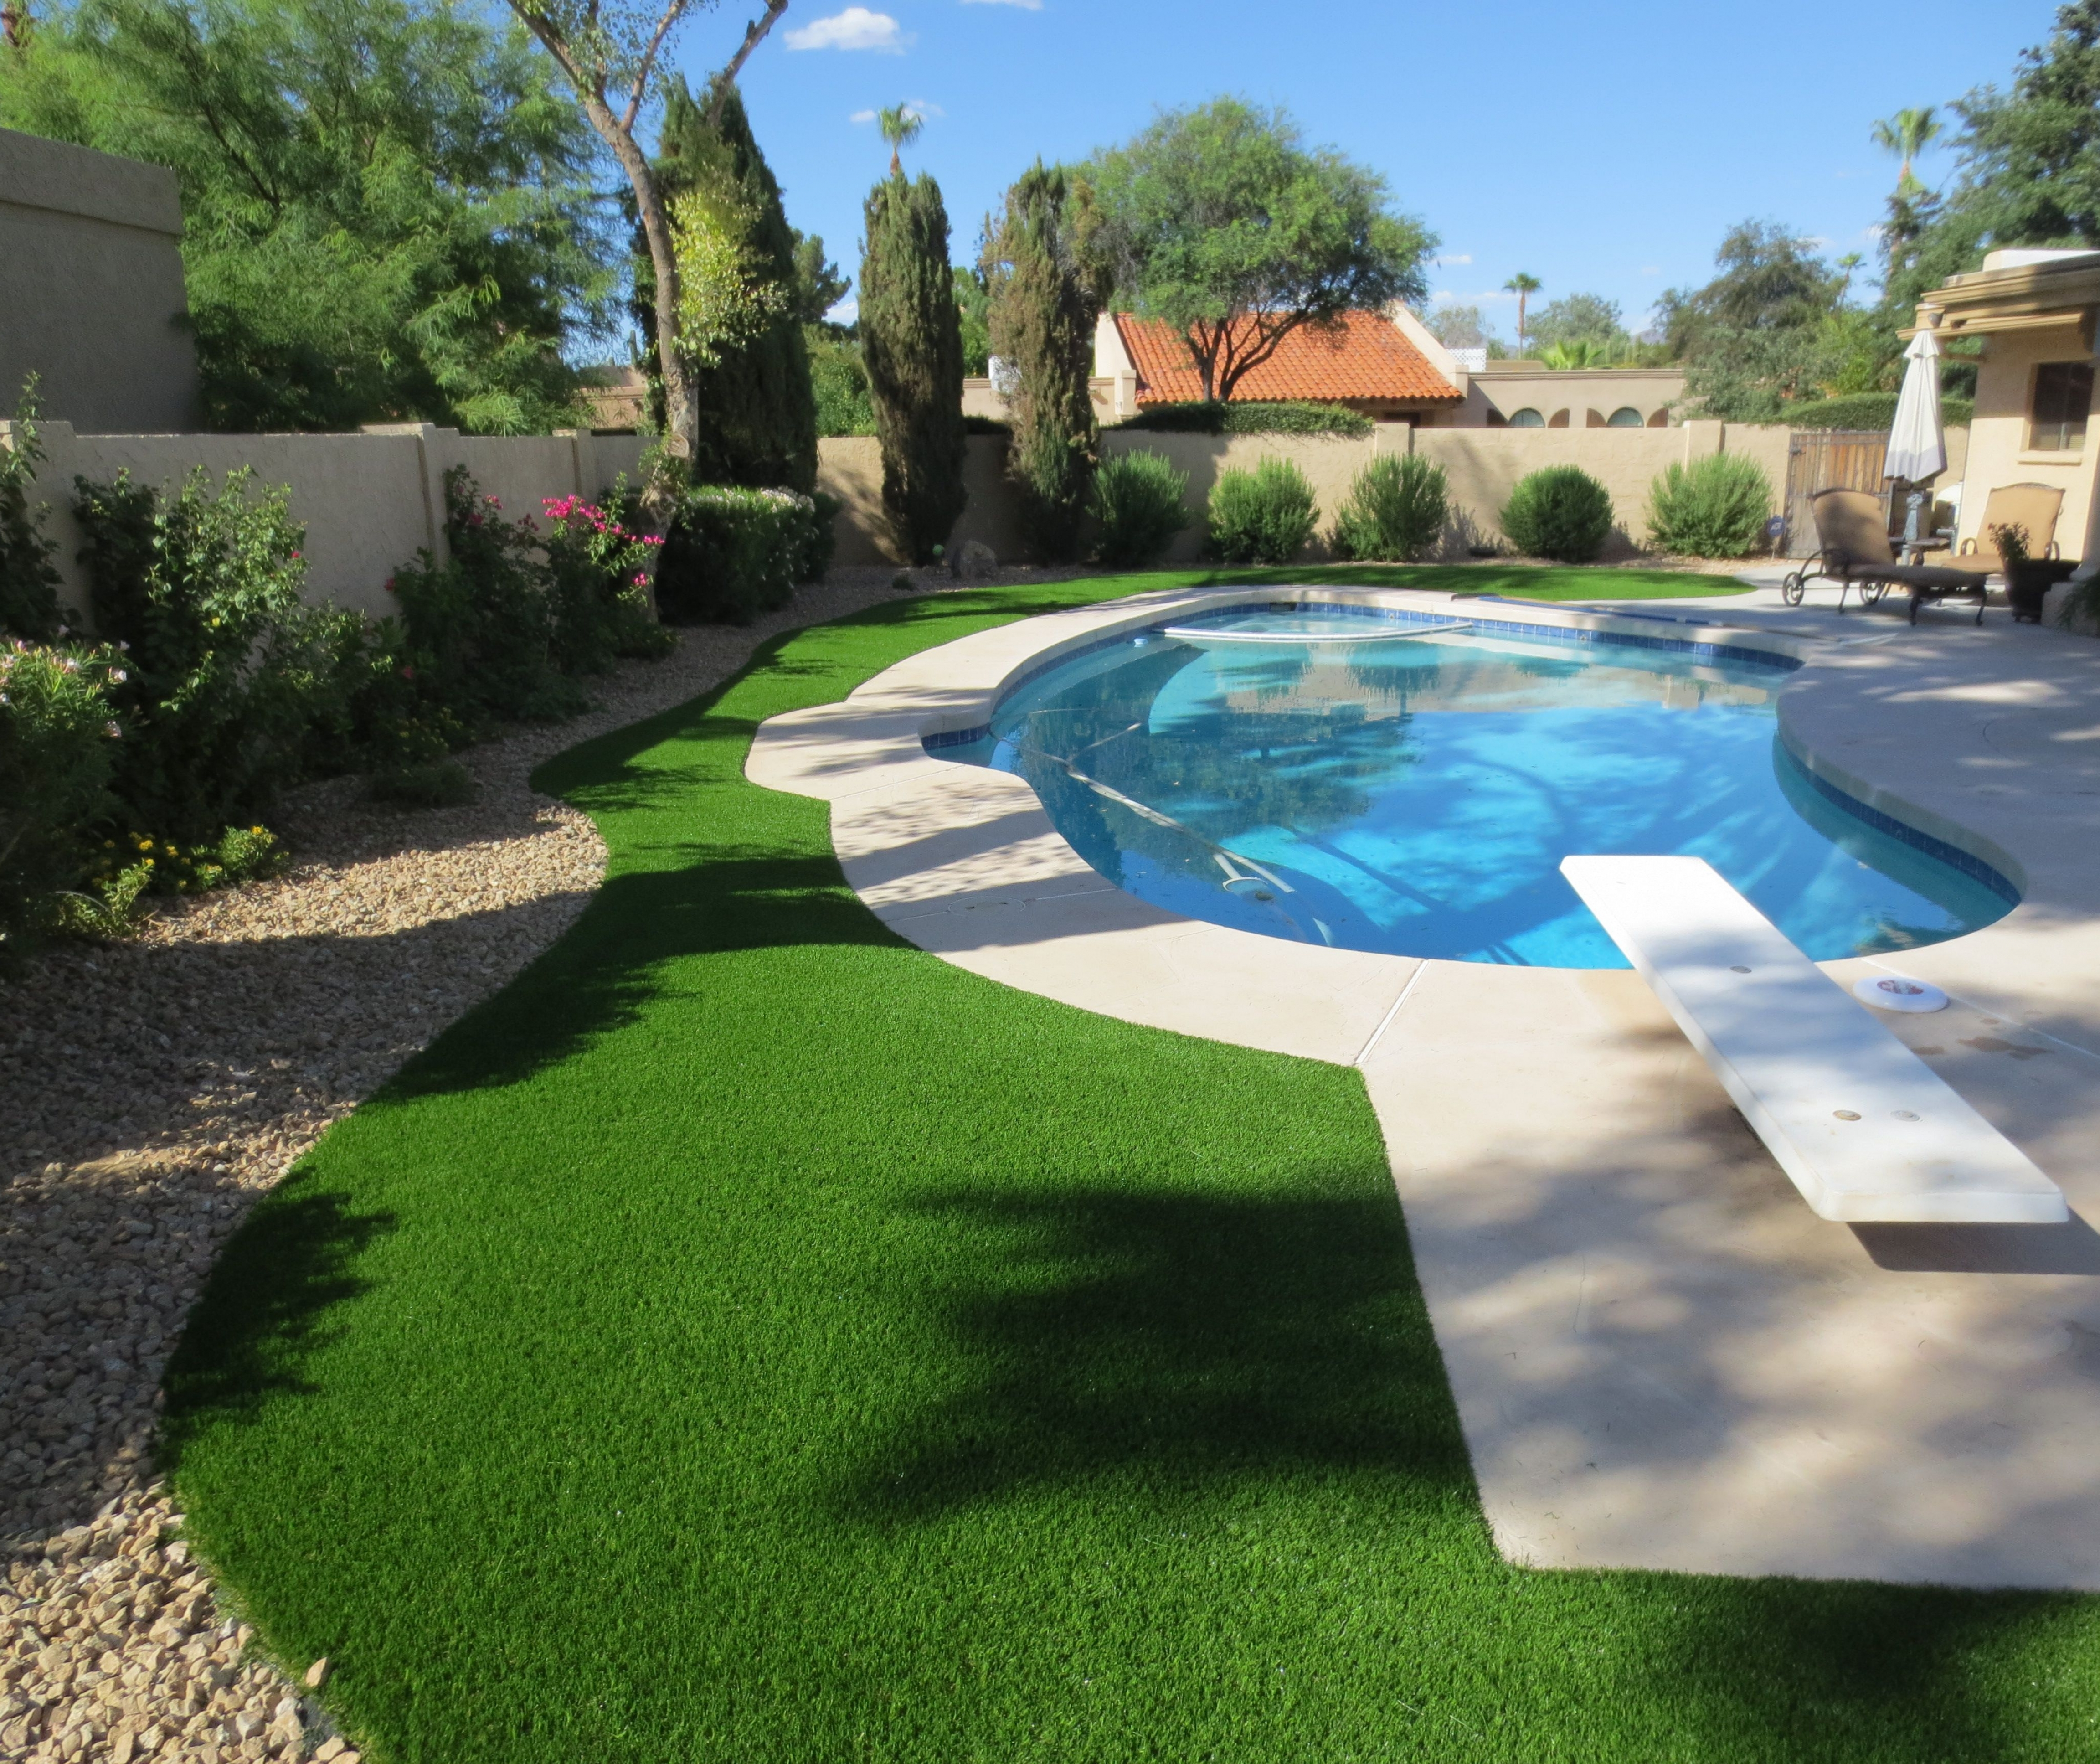 Swimming pool backyard synthetic artificial grass turf